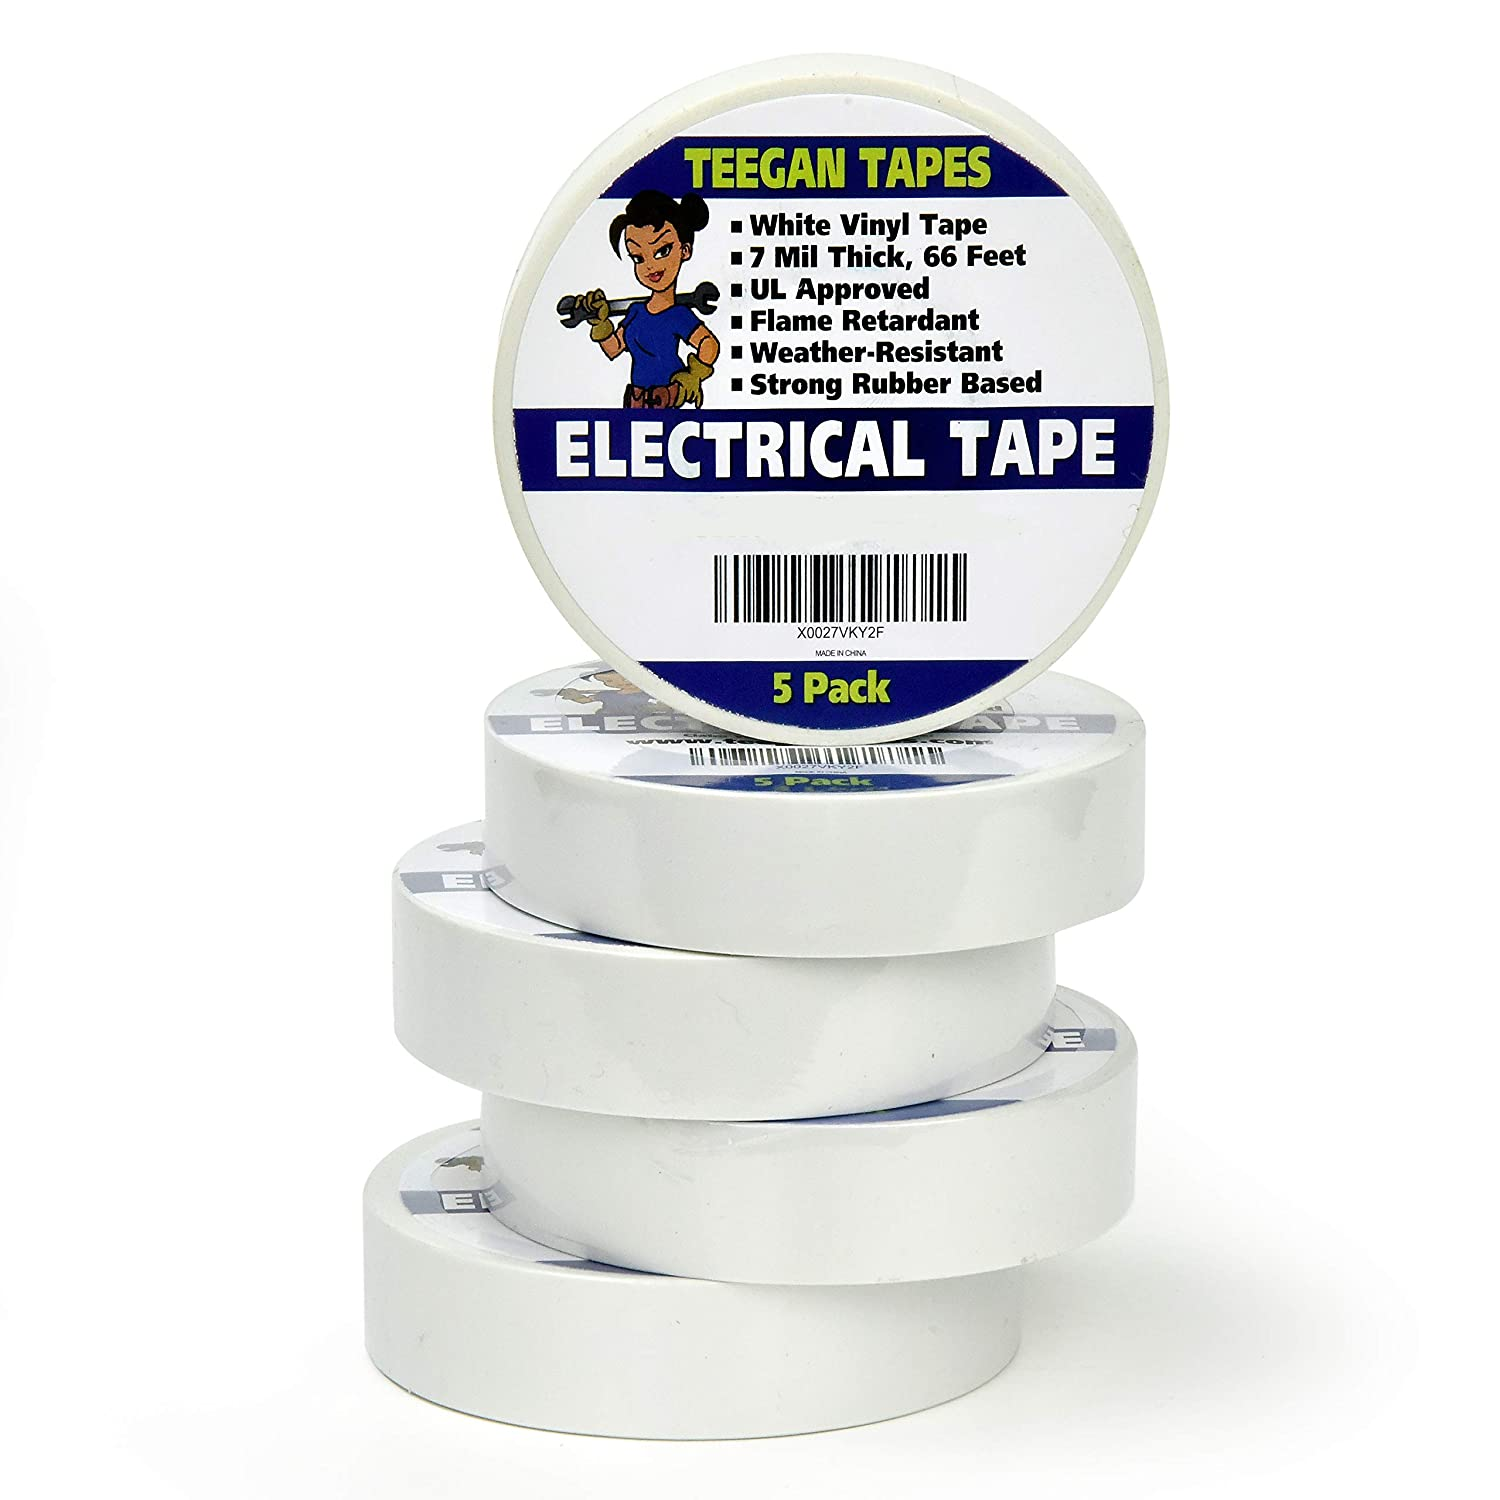 White Electrical Tape - Vinyl Electric Tape (5 Pack) | 7 mil Thick Vinyl Tape 3/4 Inch Wide 66 Foot Long Roll | Strong Rubber Base | Flame Retardant, Temperature & Weather Resistant (White)